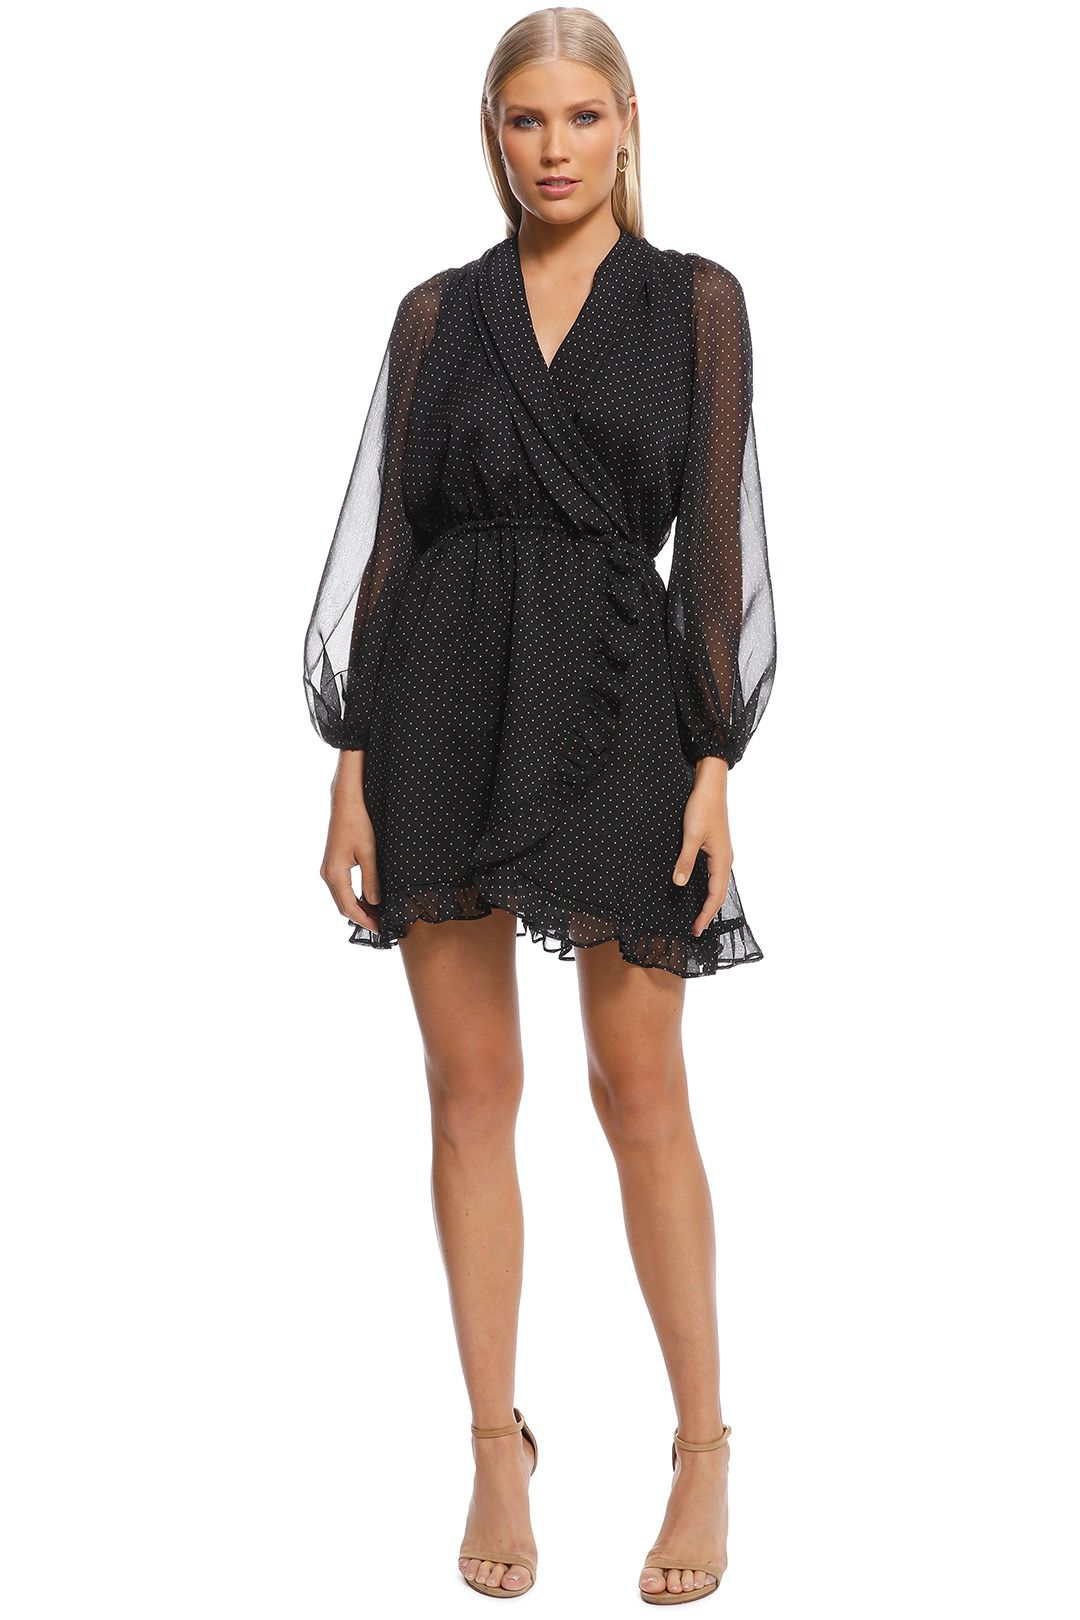 Talulah - Shadow Play Mini Dress - Front